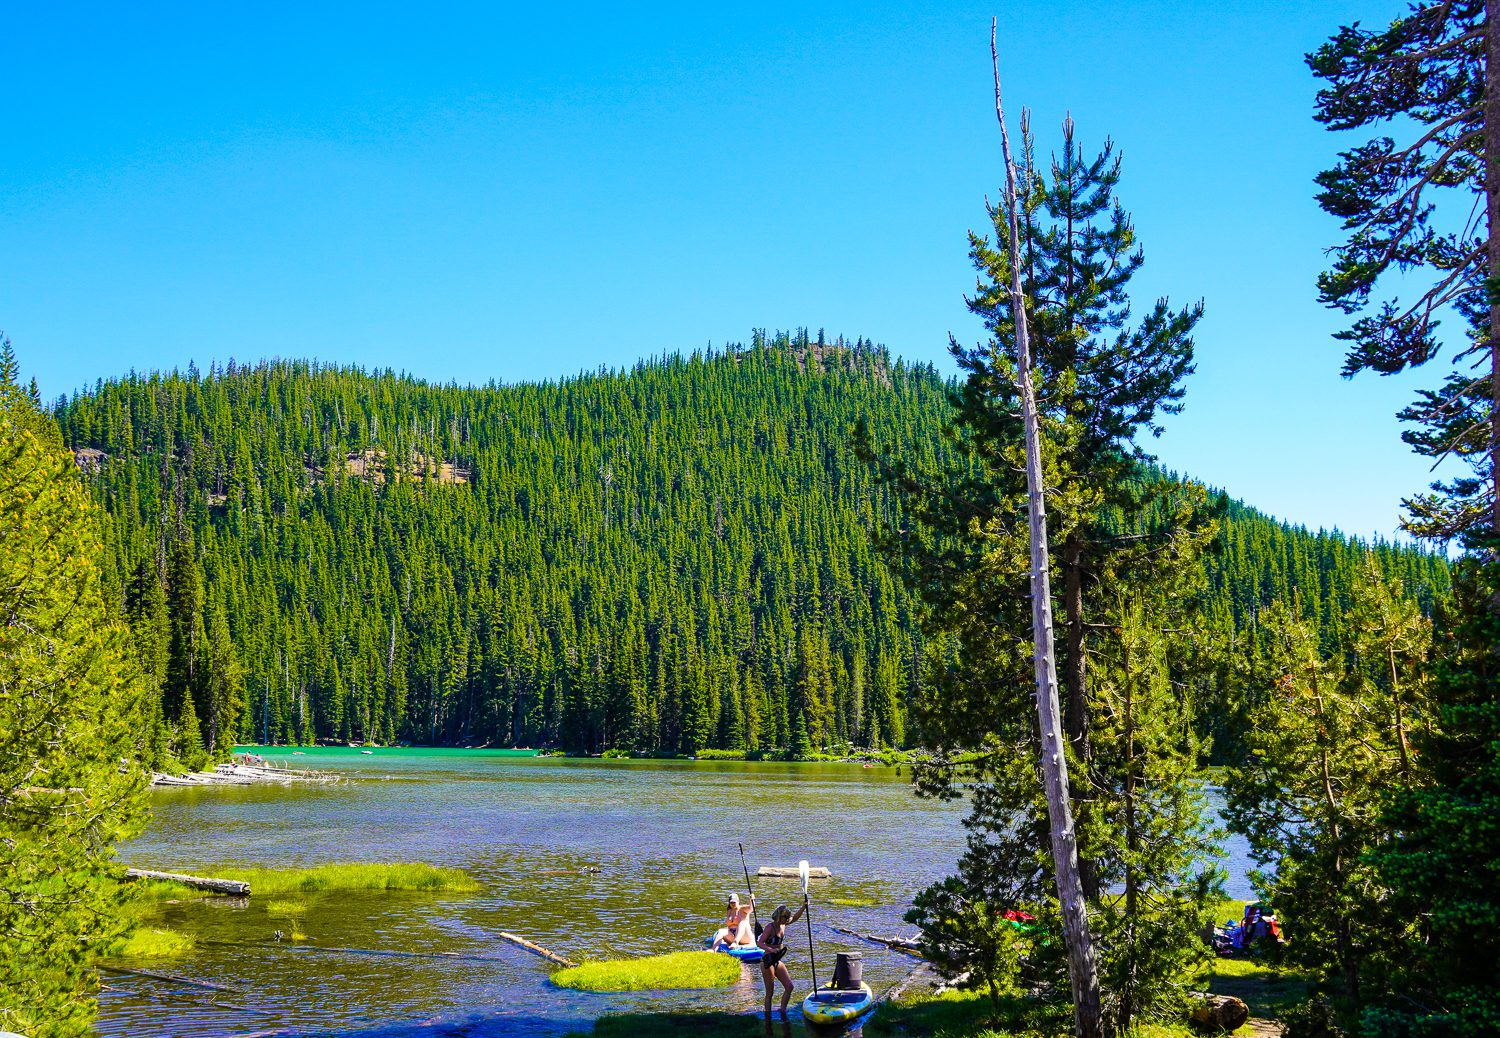 Sparks Lake, with hills surrounding.